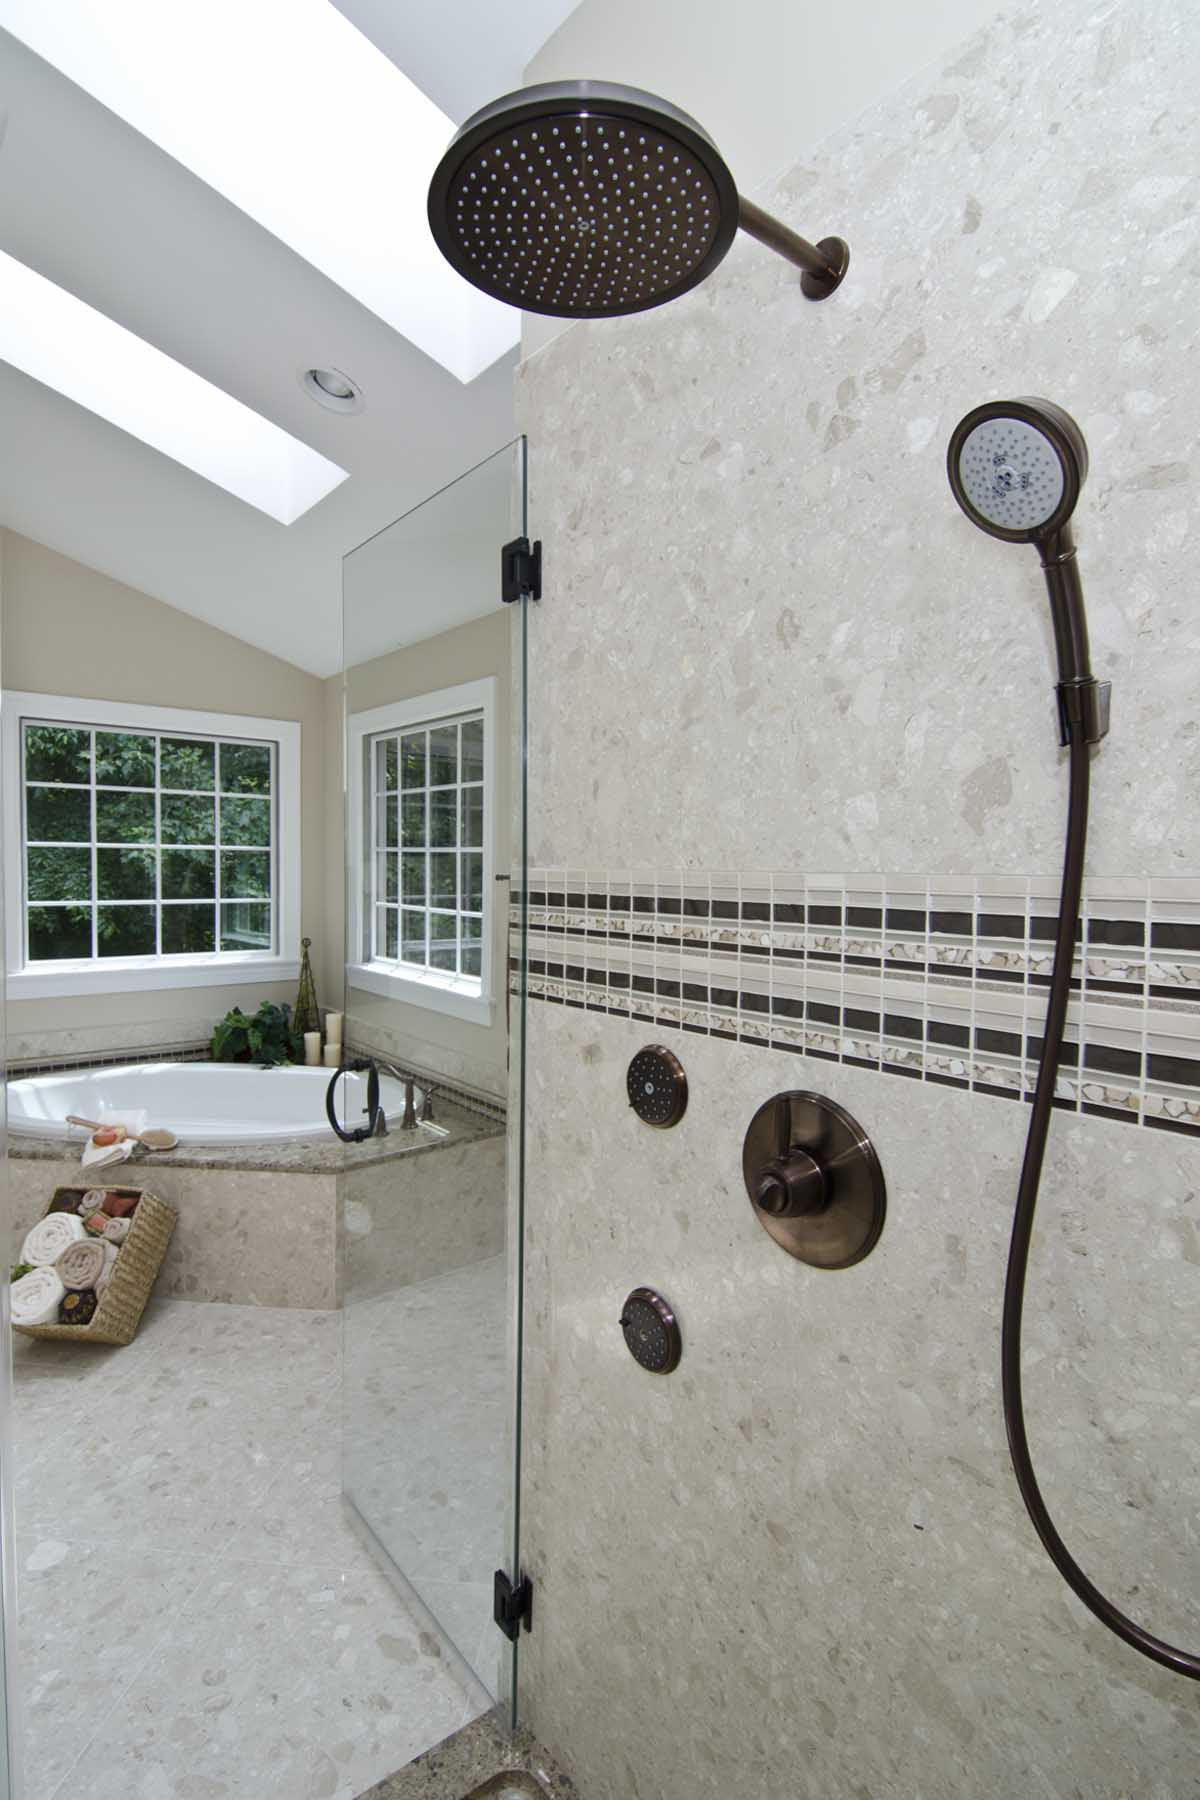 Verona Shower walls in Perlato Royal and Glass Accent